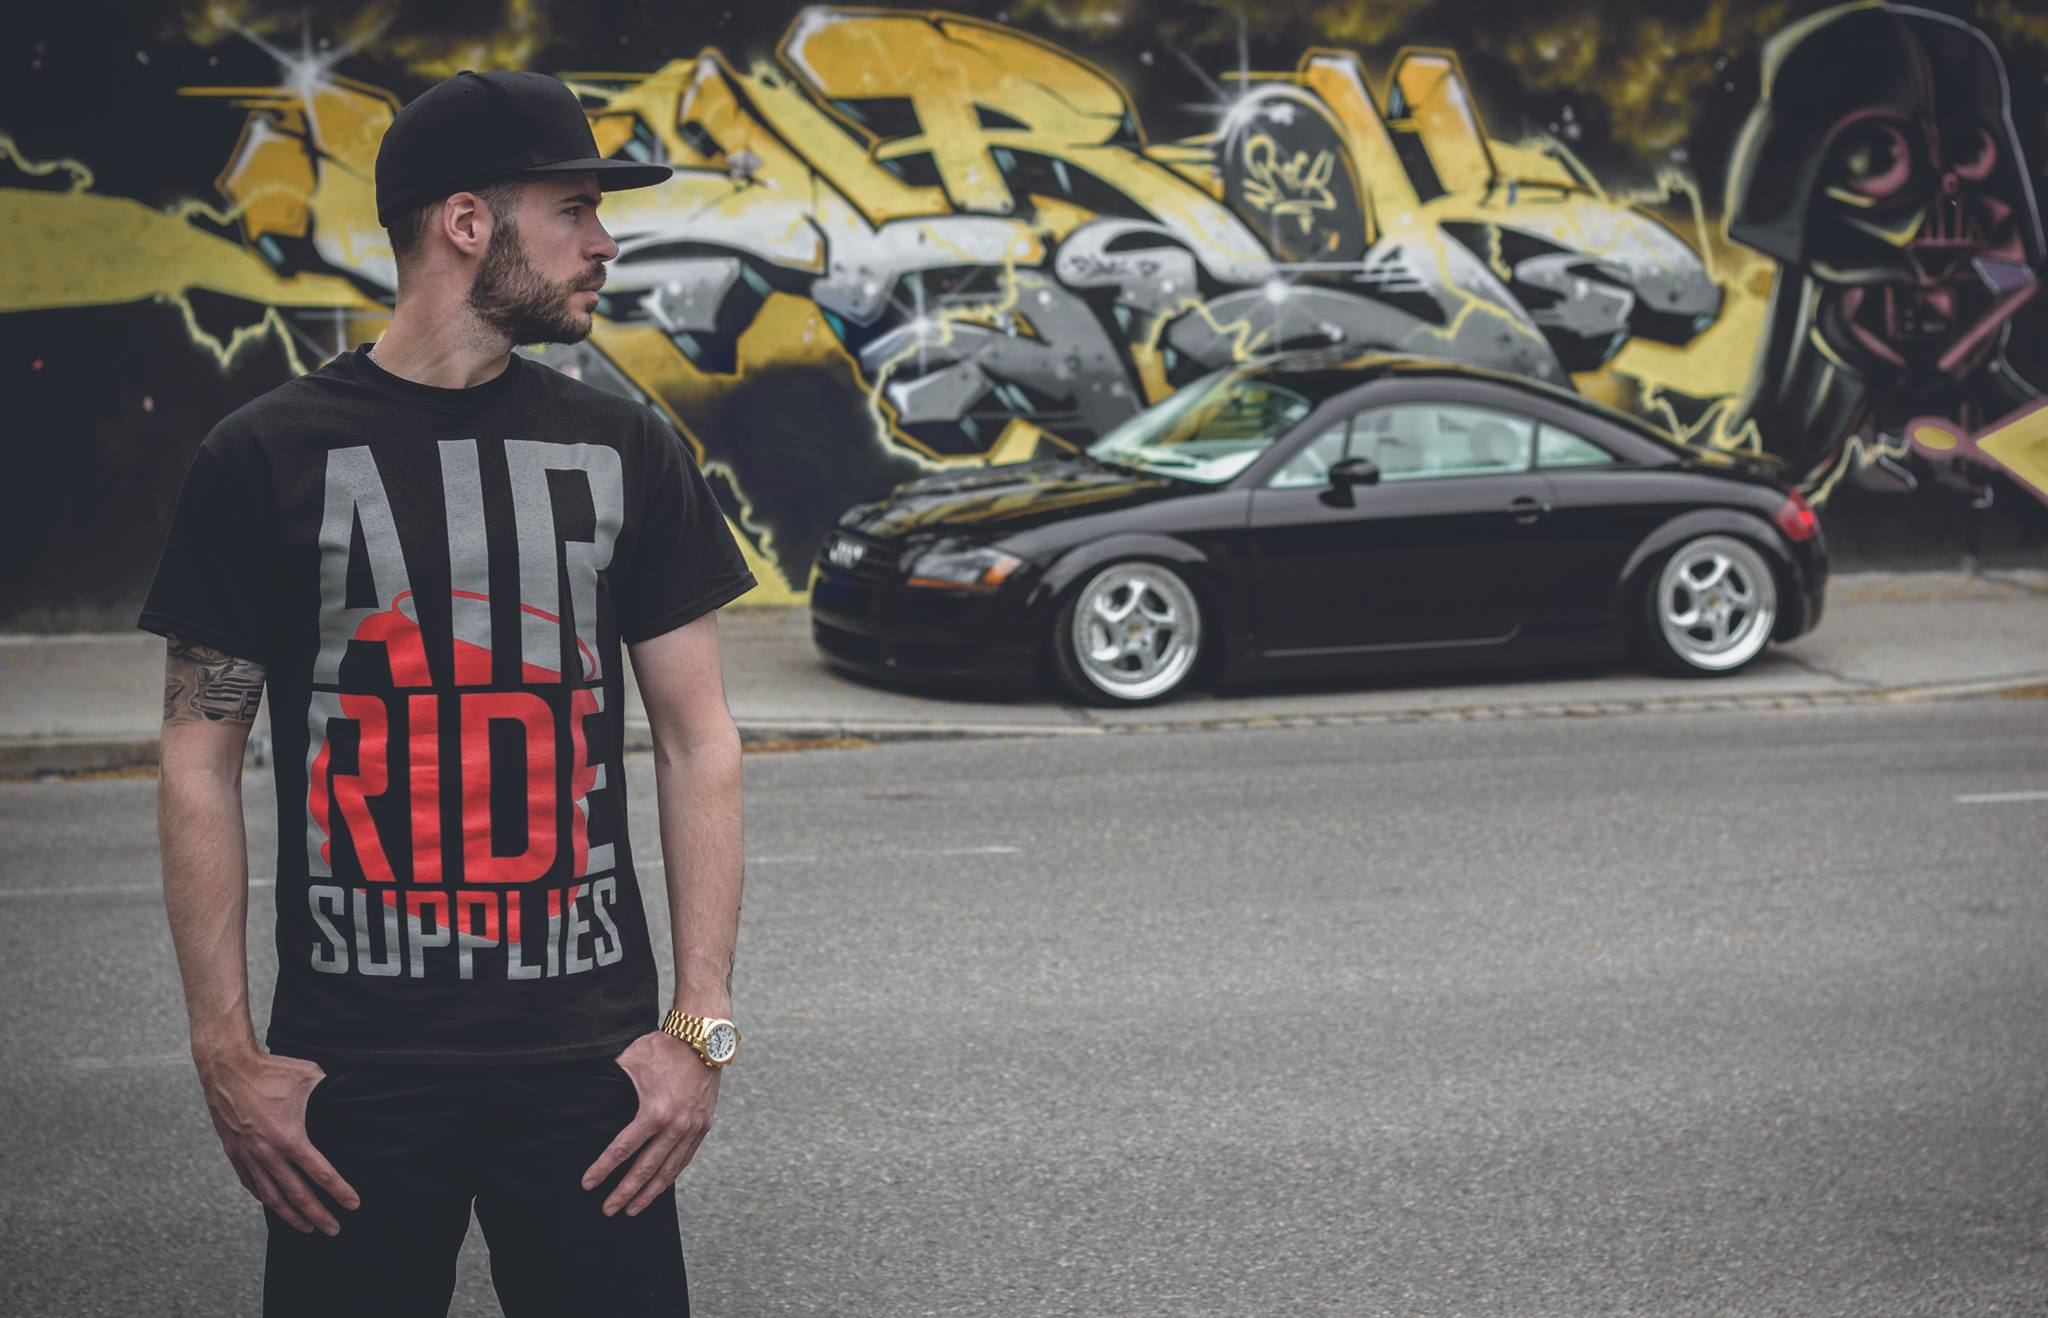 airride supplies T-Shirt